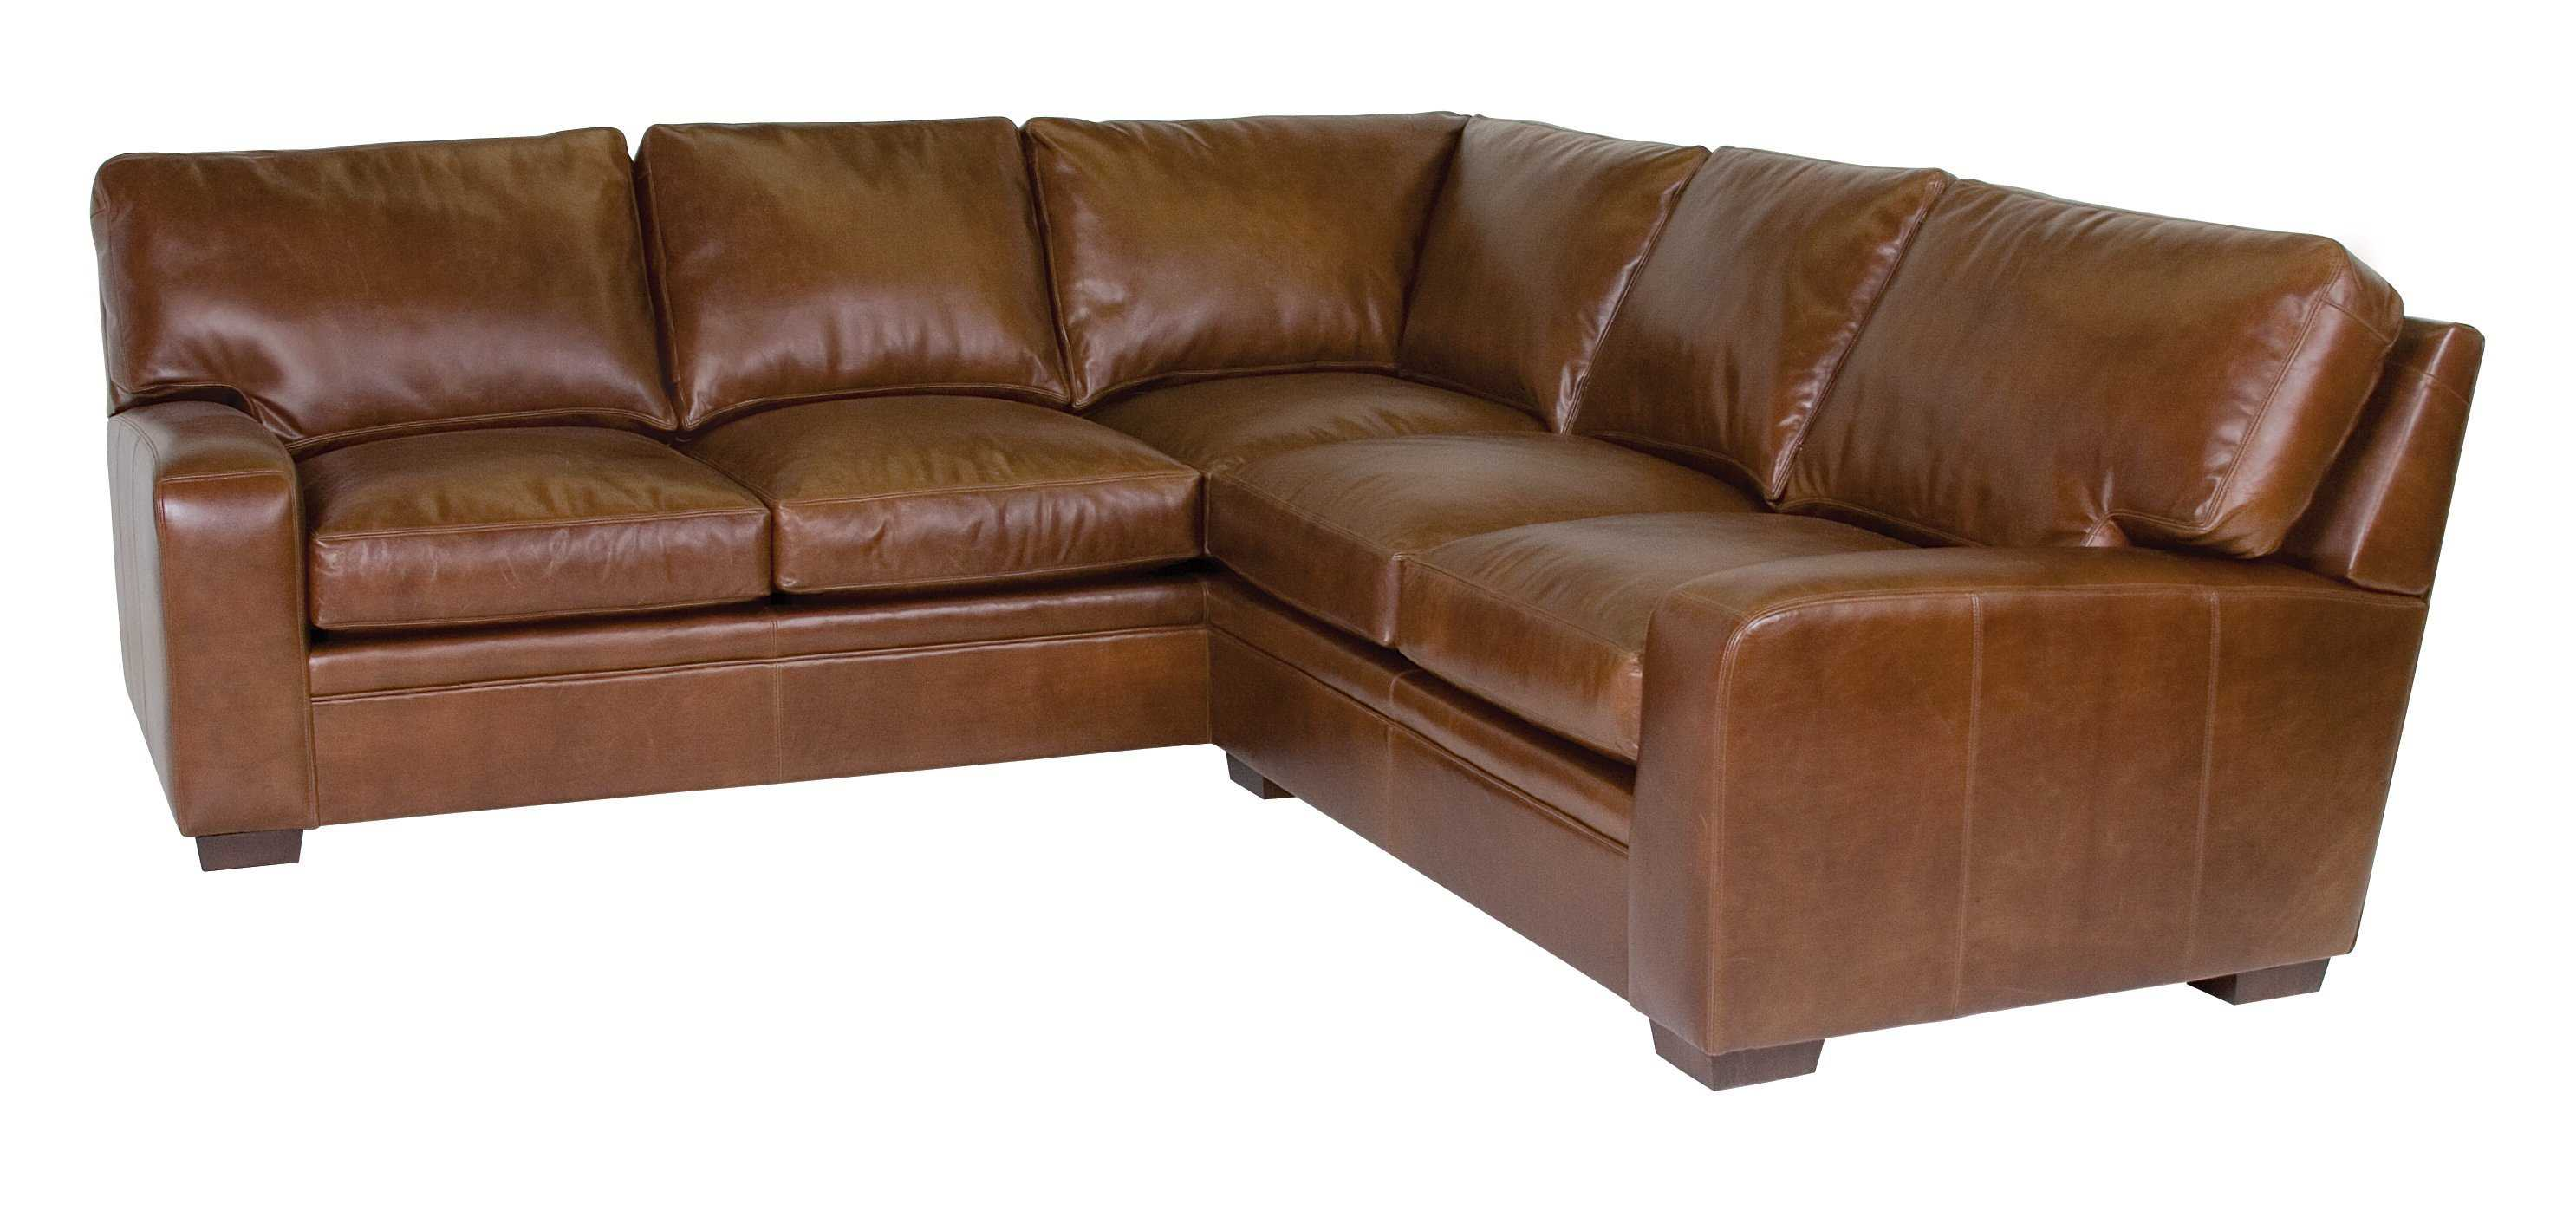 sectional sofa vancouver dania sale sofas classic leather cl34428